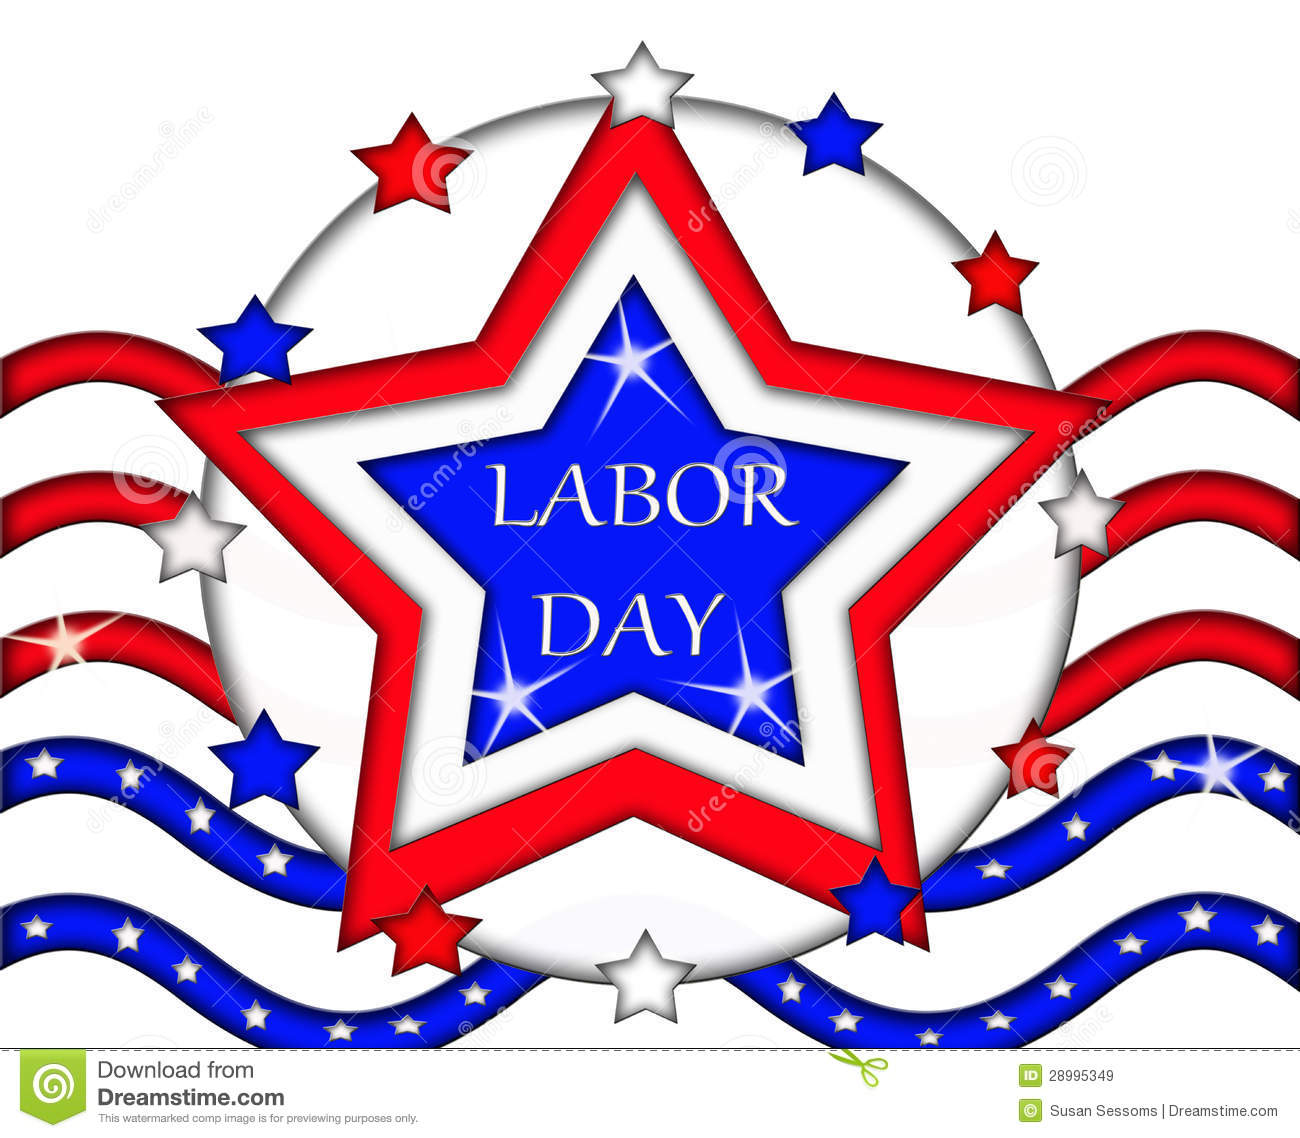 labor day clip art labor day hd cliparts for men women kids rh happynewyearusaquotes net clip art labor day images clip art labor day weekend